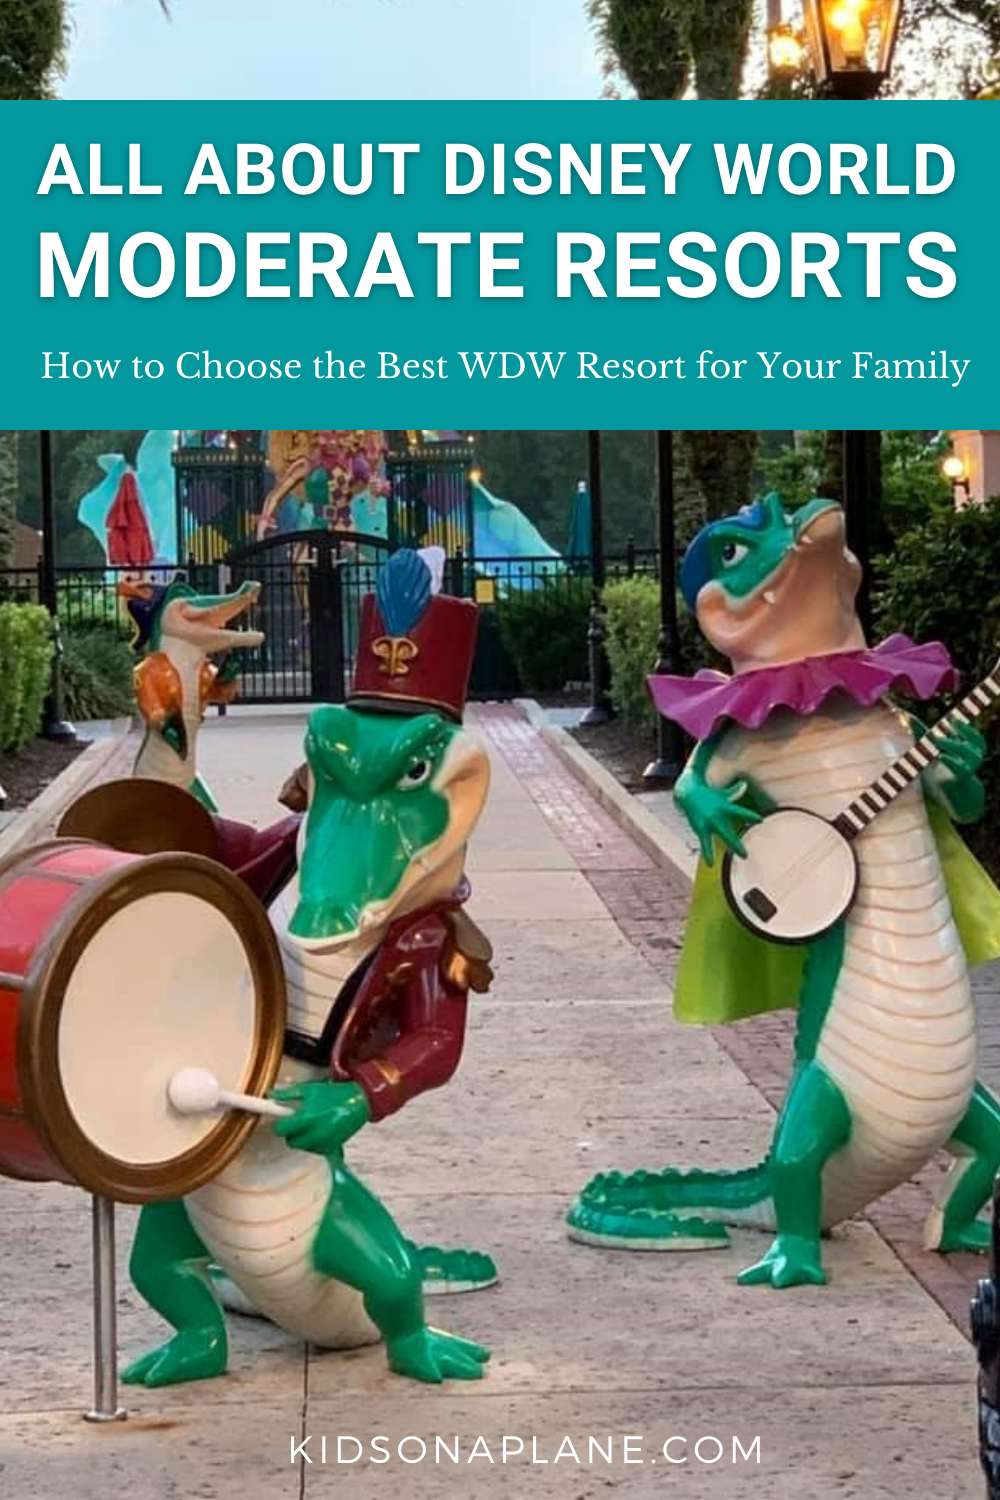 Disney World Moderate Resorts - Everything you need to know - cost pros and cons and how to choose the right one